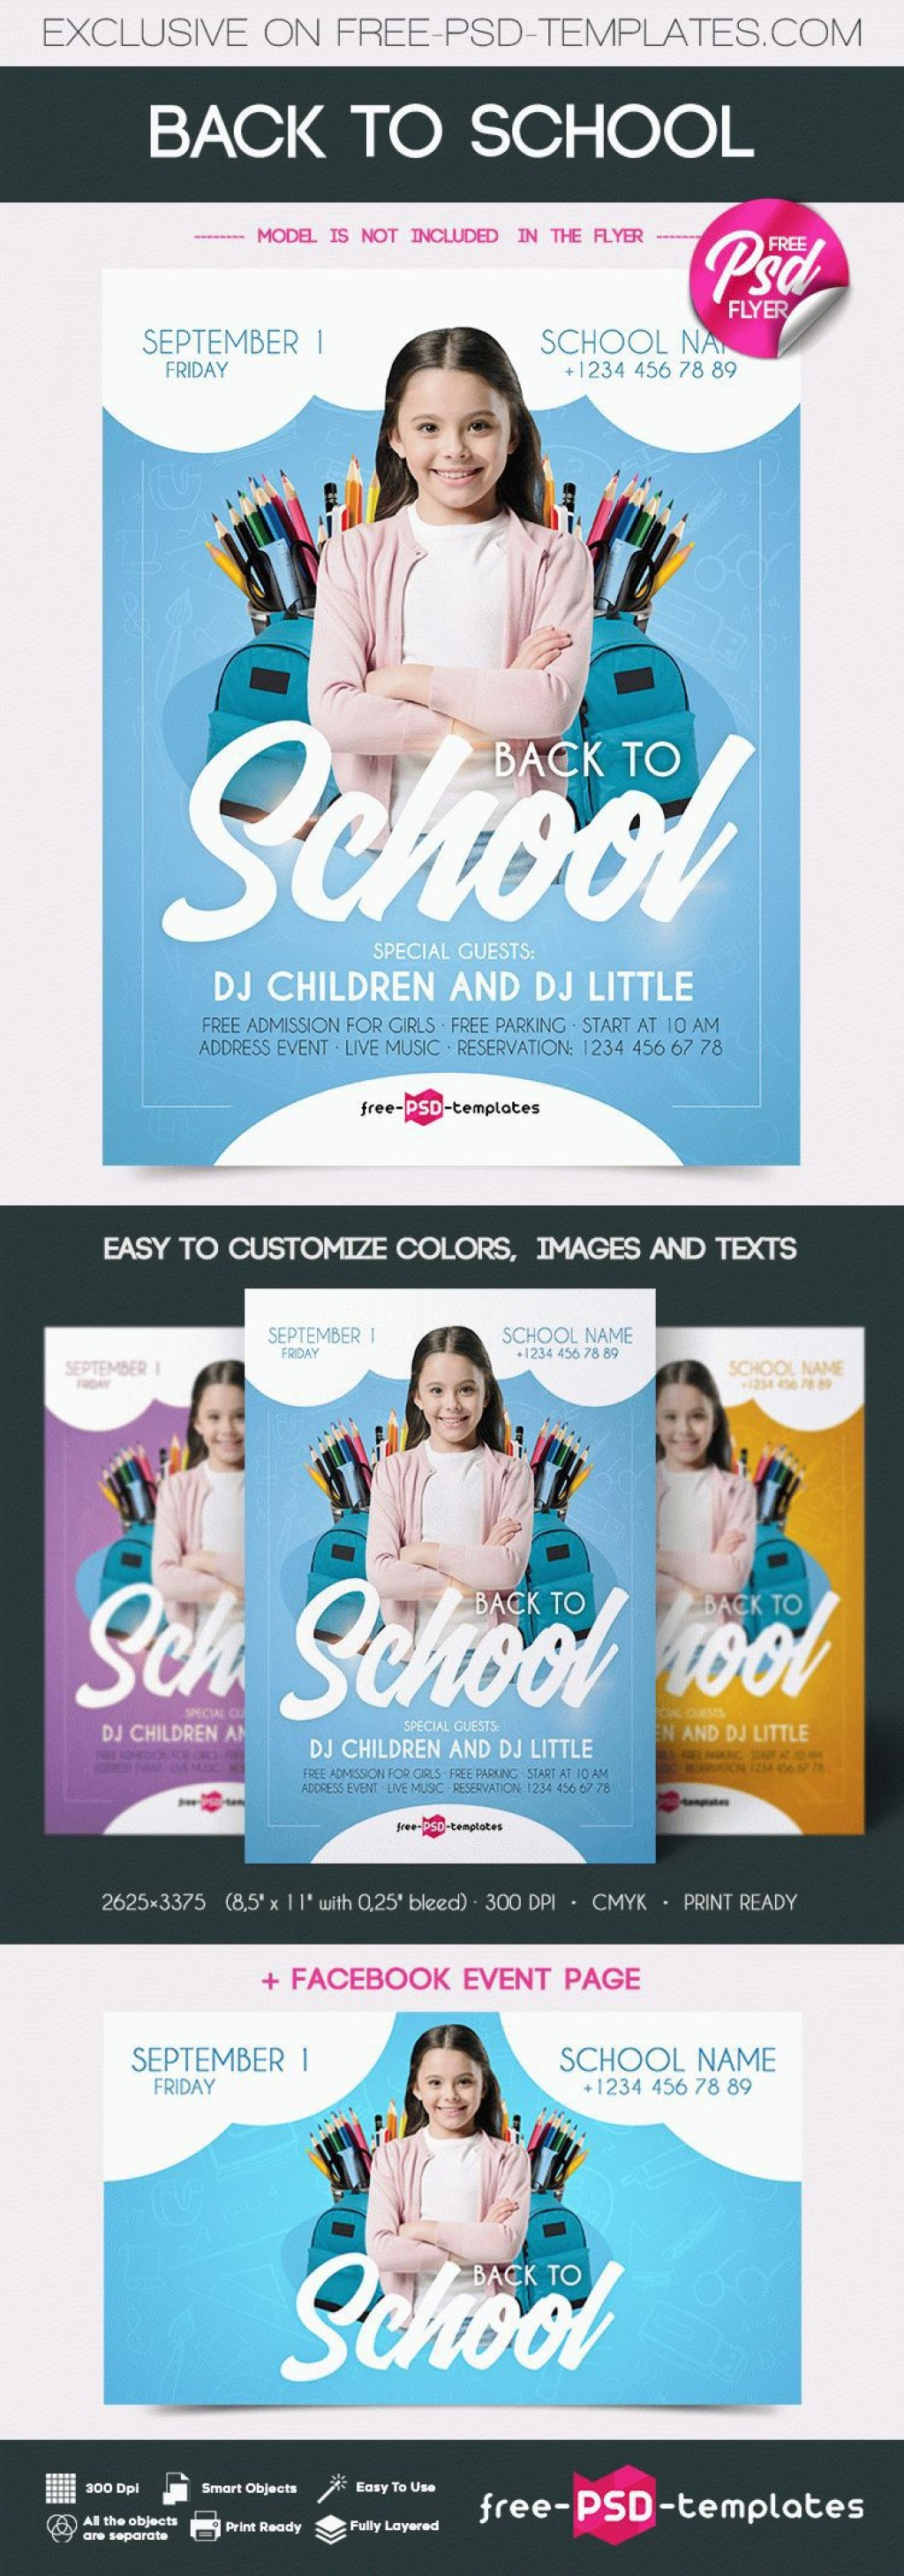 006 Excellent Free School Flyer Template Concept  Templates Vacation Bible For Microsoft Word EventLarge